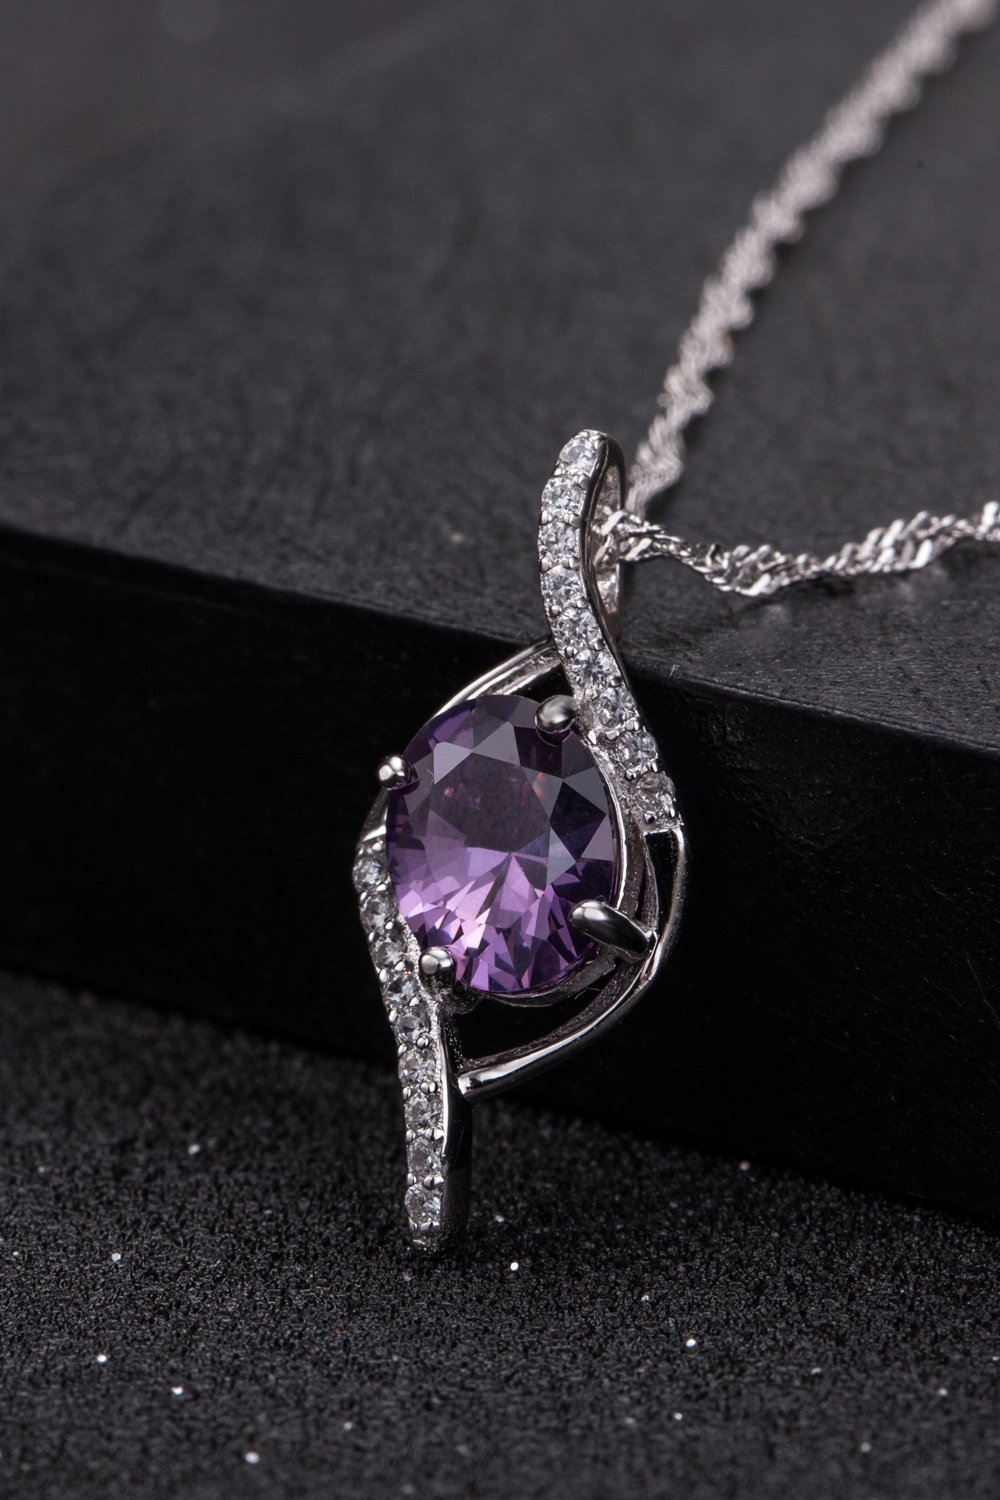 Thai Love Your Unique Amethyst Necklace Pendant Women Girls Chain Clavicle Short s925 Silver Accessories Women Gift Gift by PAGIPEN